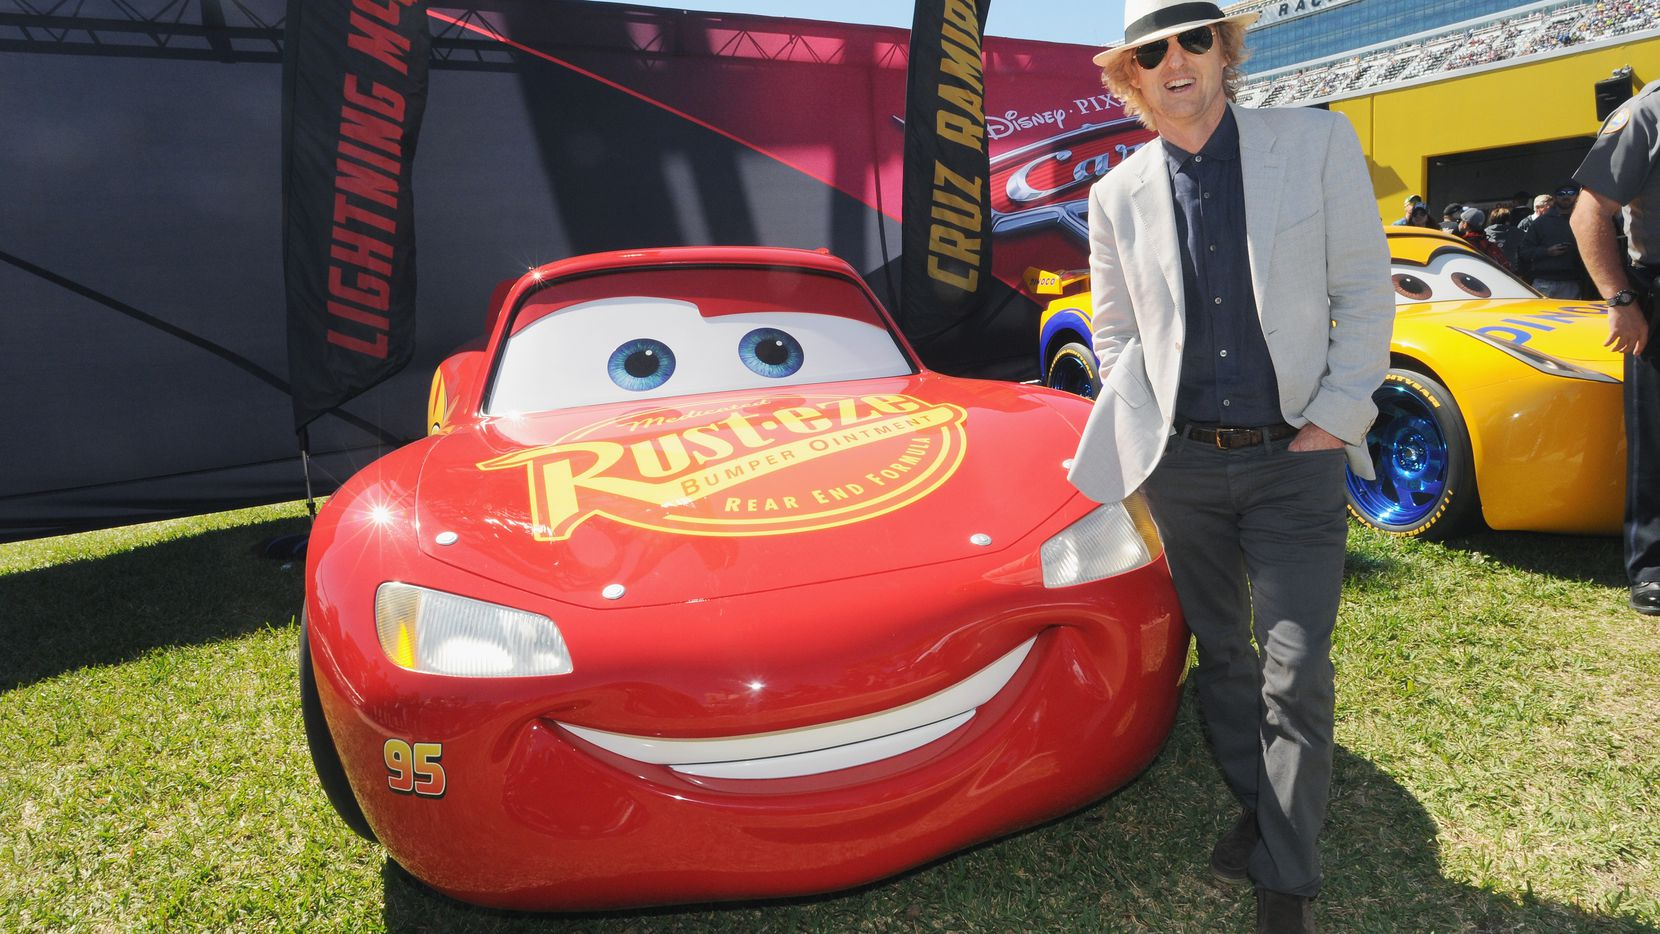 Life Size Cars 3 Characters Are Coming To Dallas Fort Worth In April